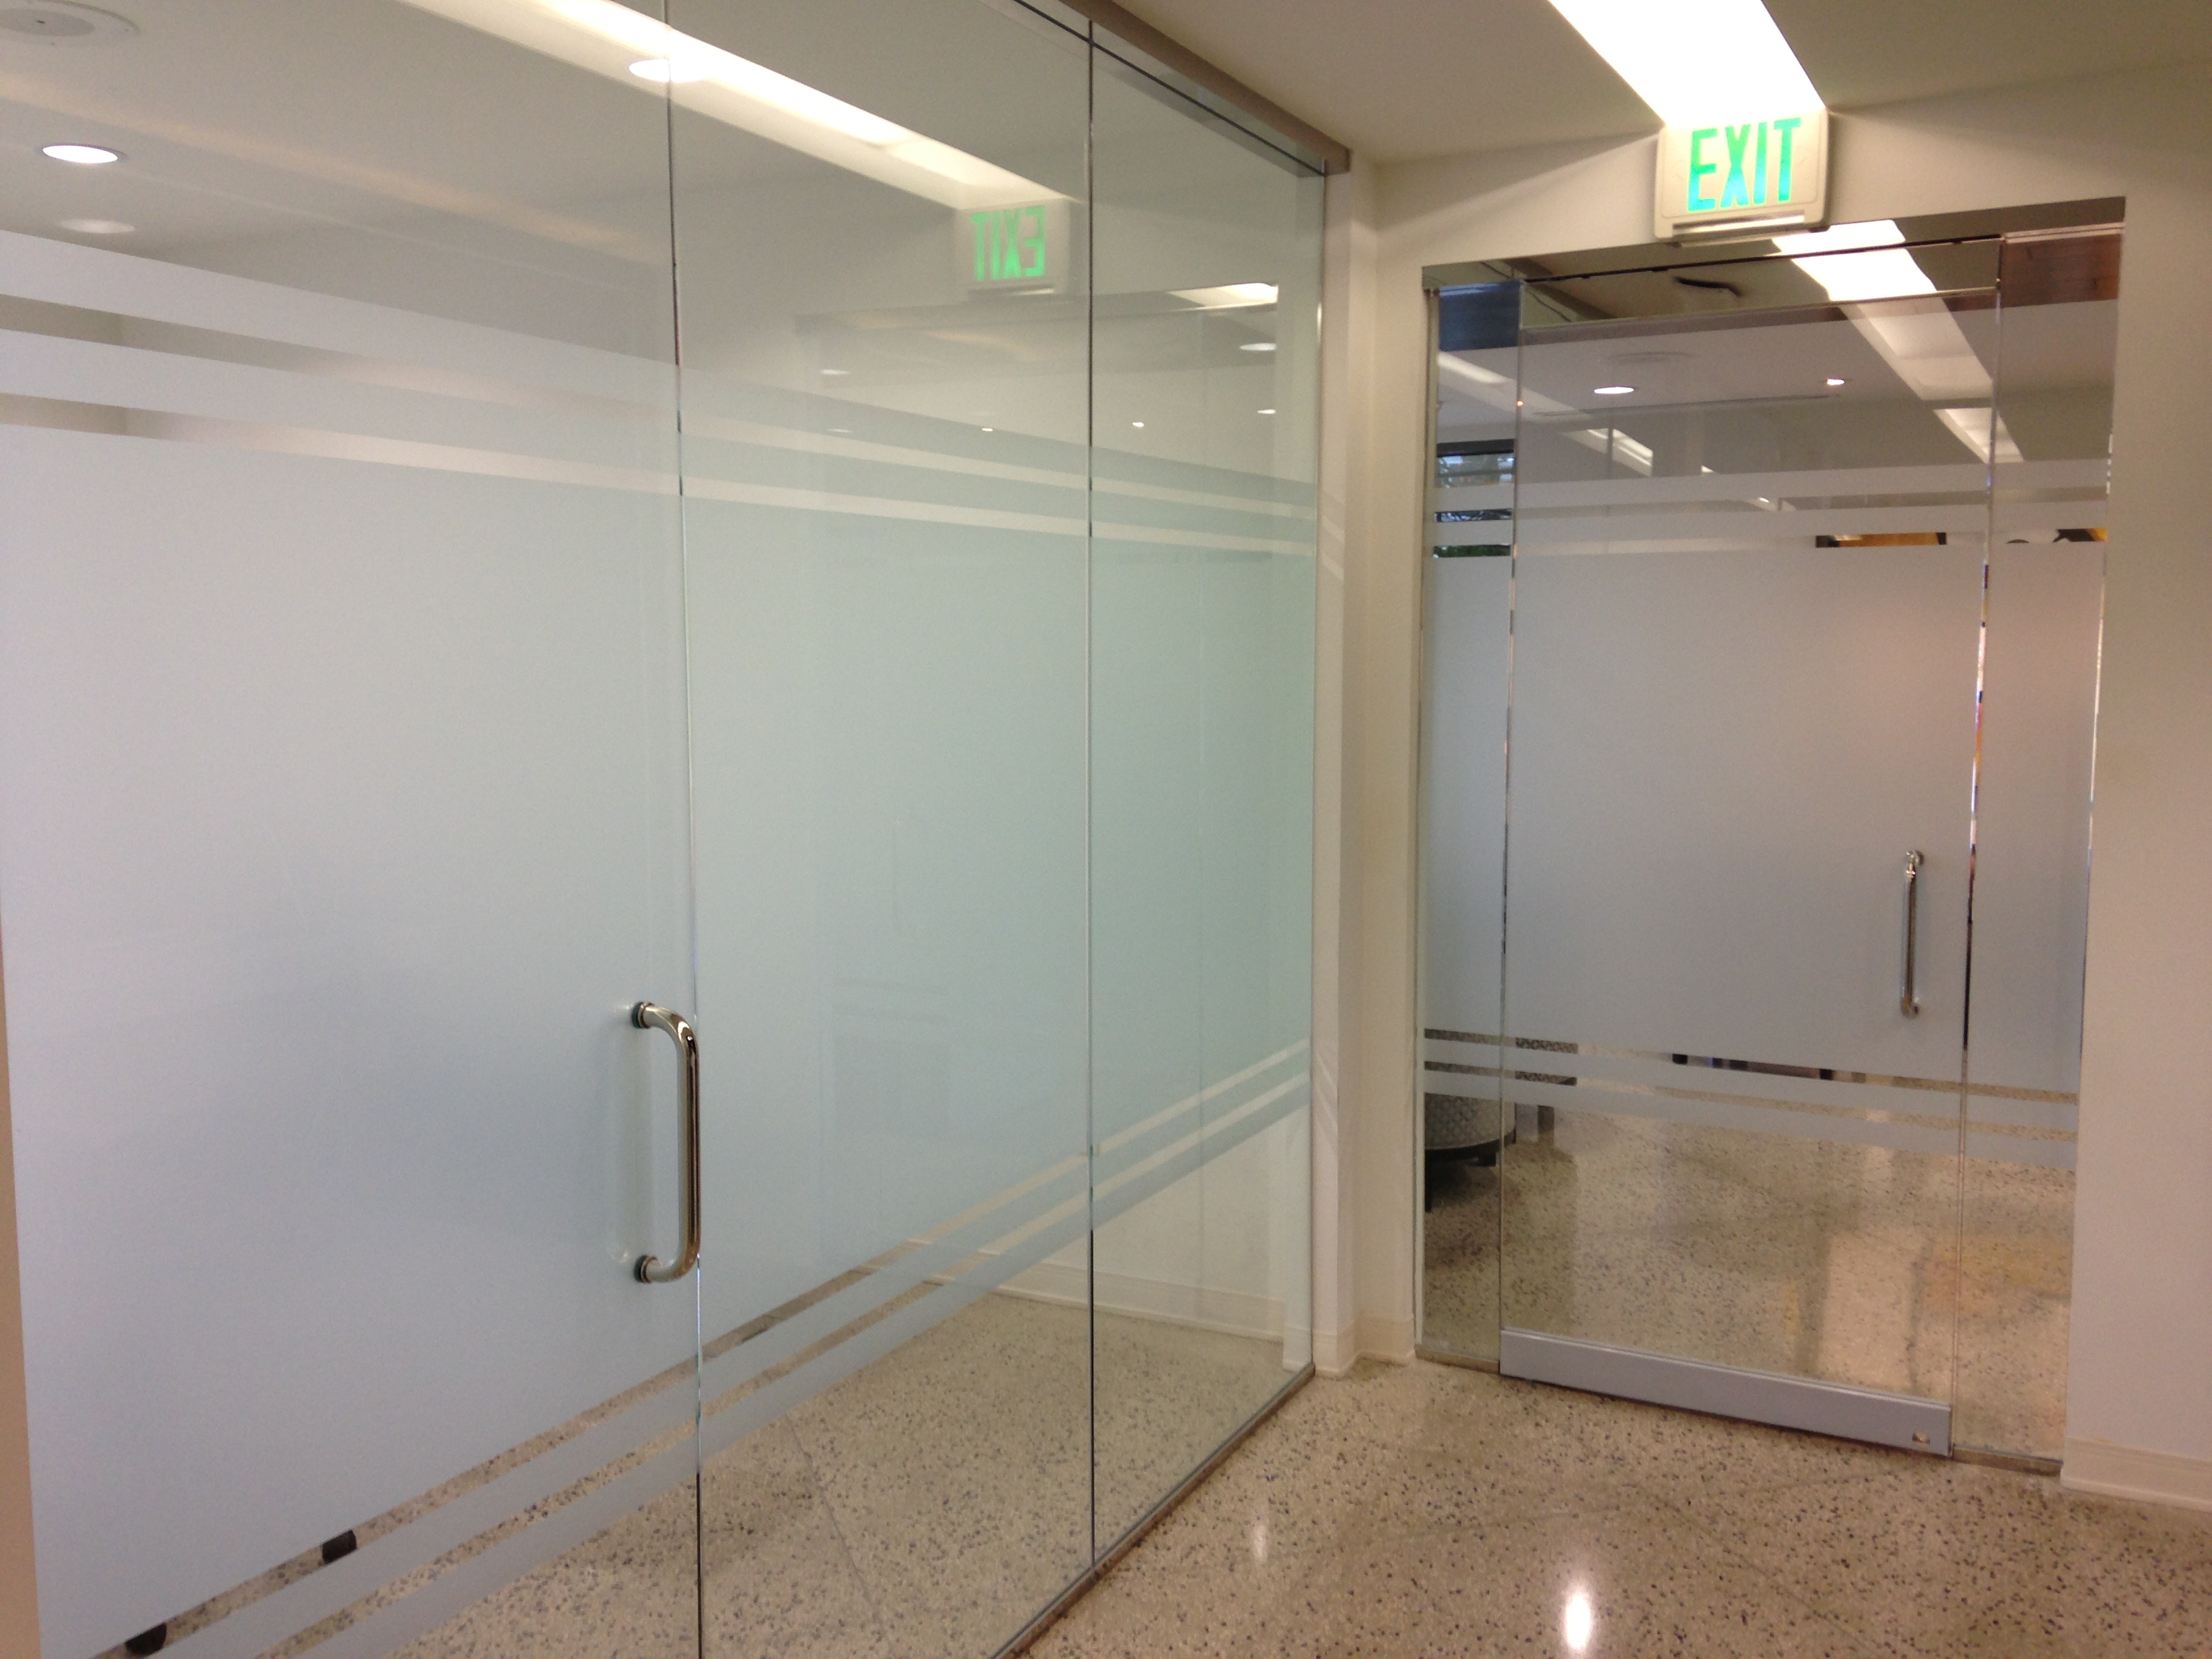 Decorative Window Film Install In Dental Office Dallas Tx